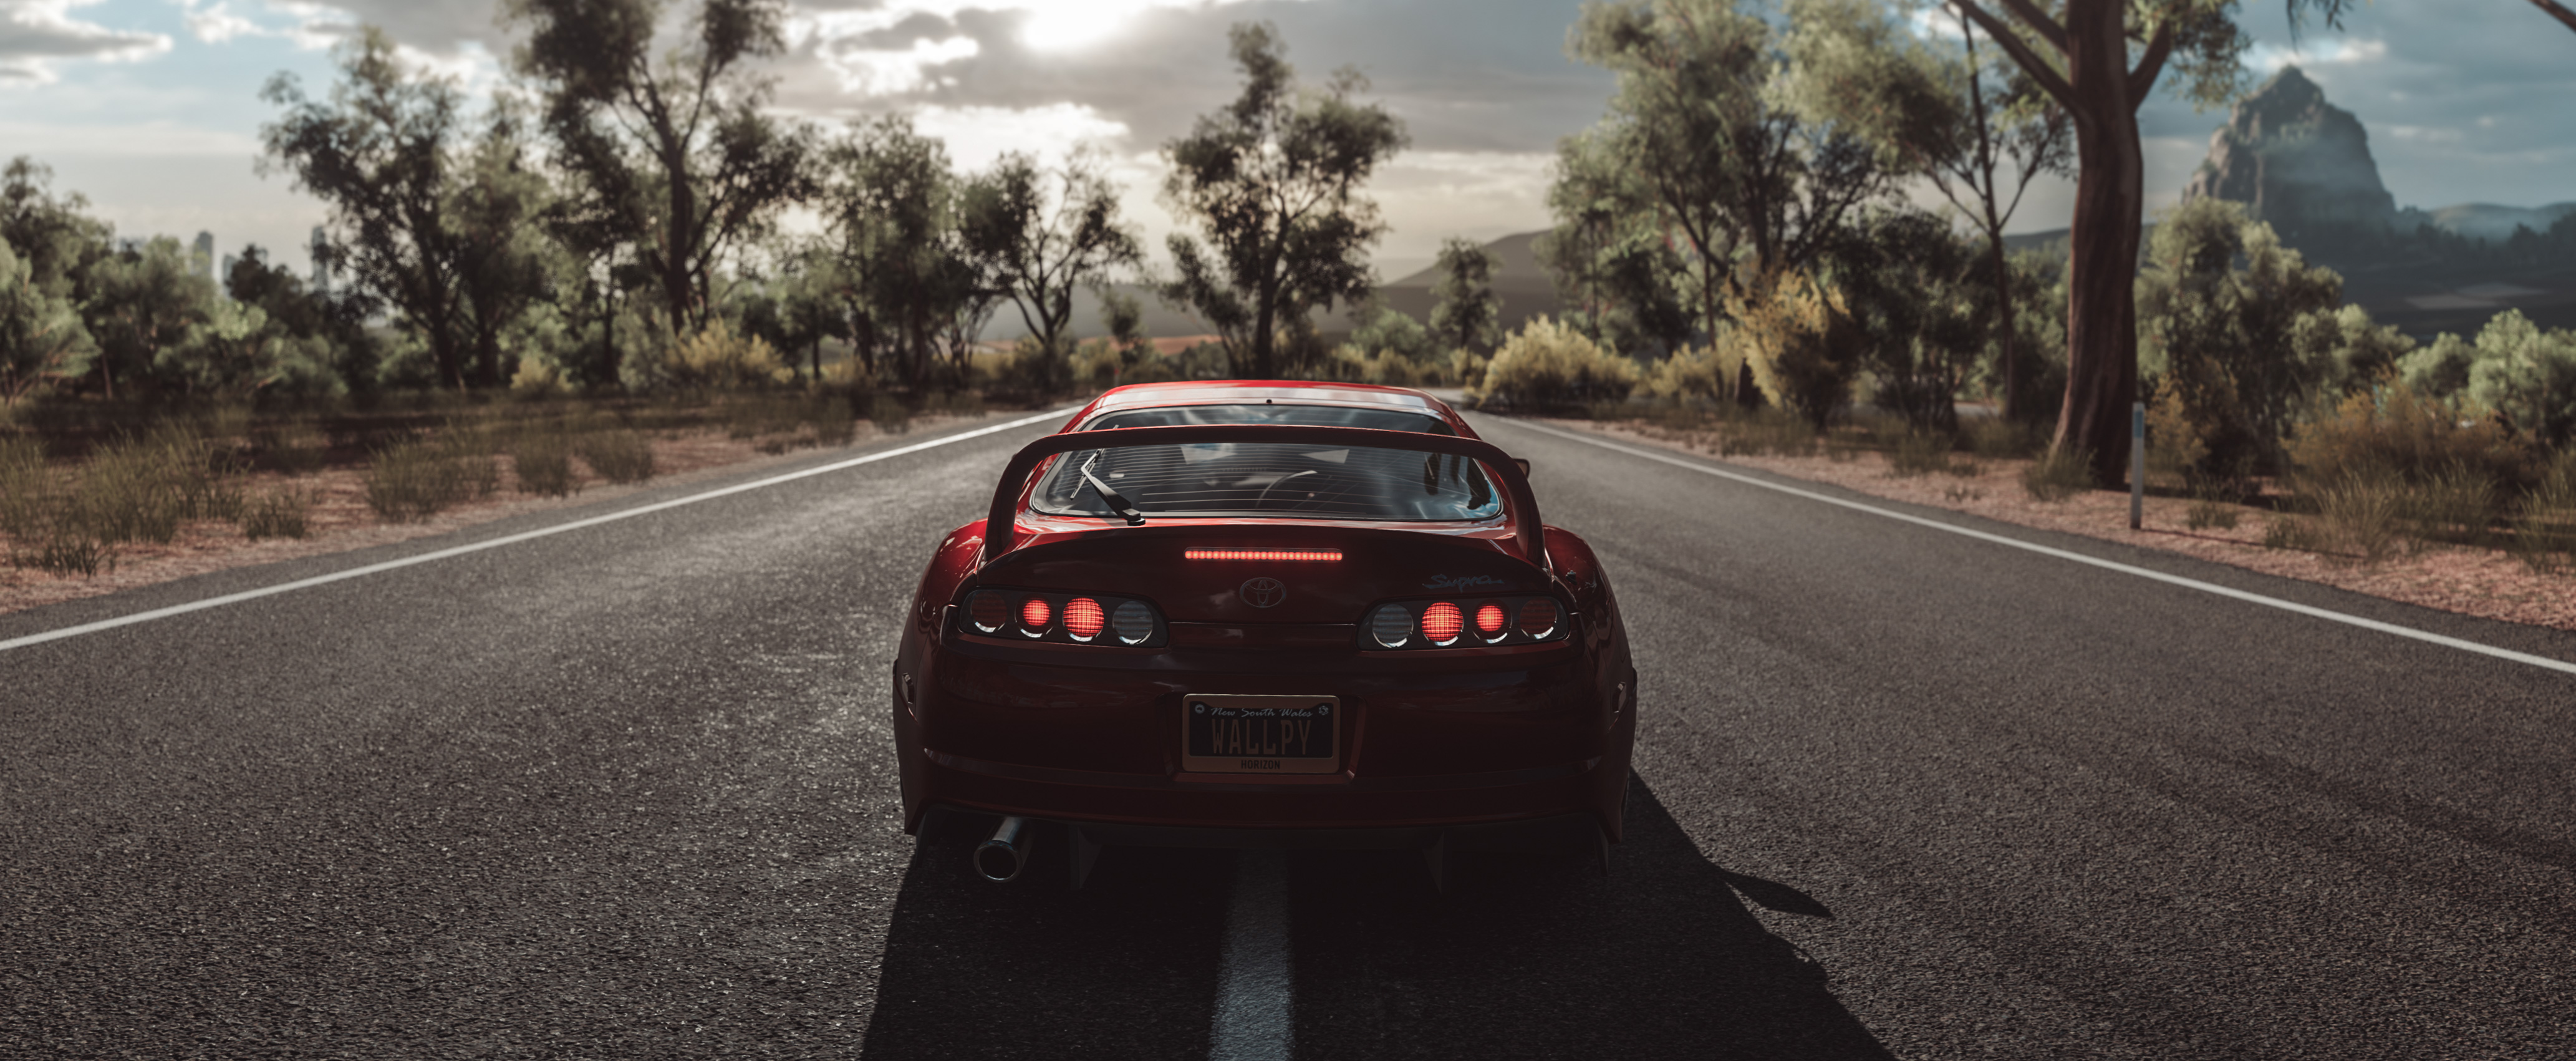 Forza Horizon 3 Toyota Supra Hd Games 4k Wallpapers Images